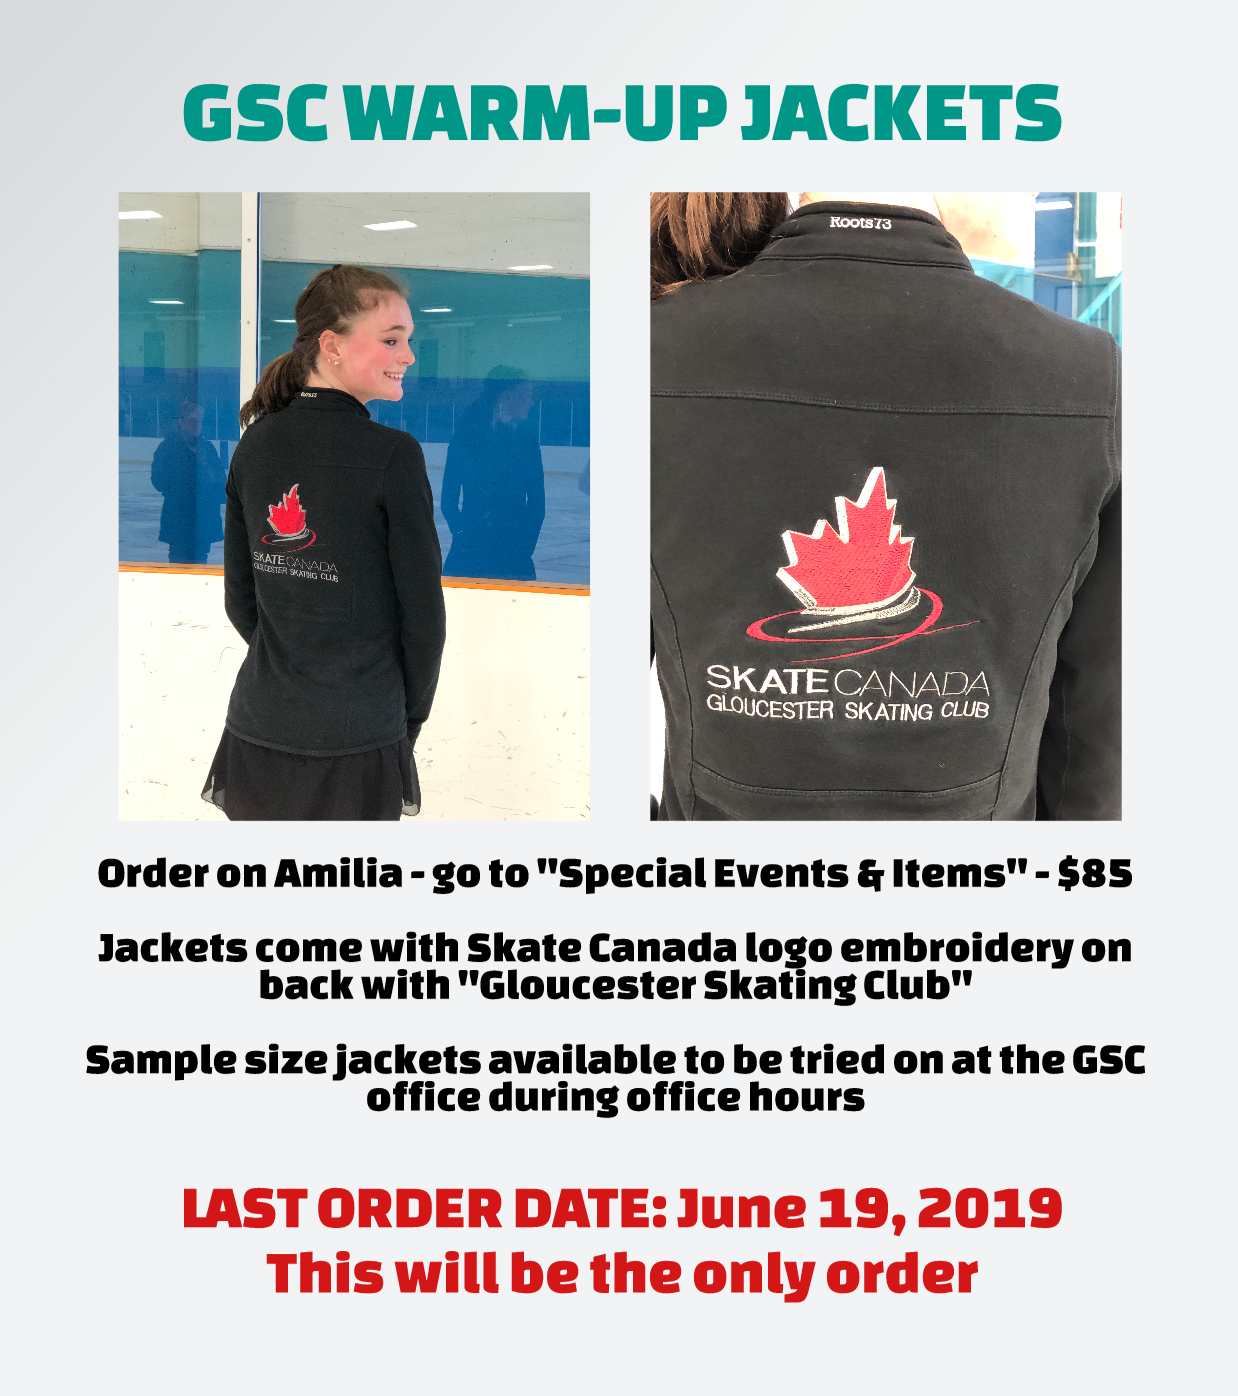 GSC Warm-Up Jackets Ad.png